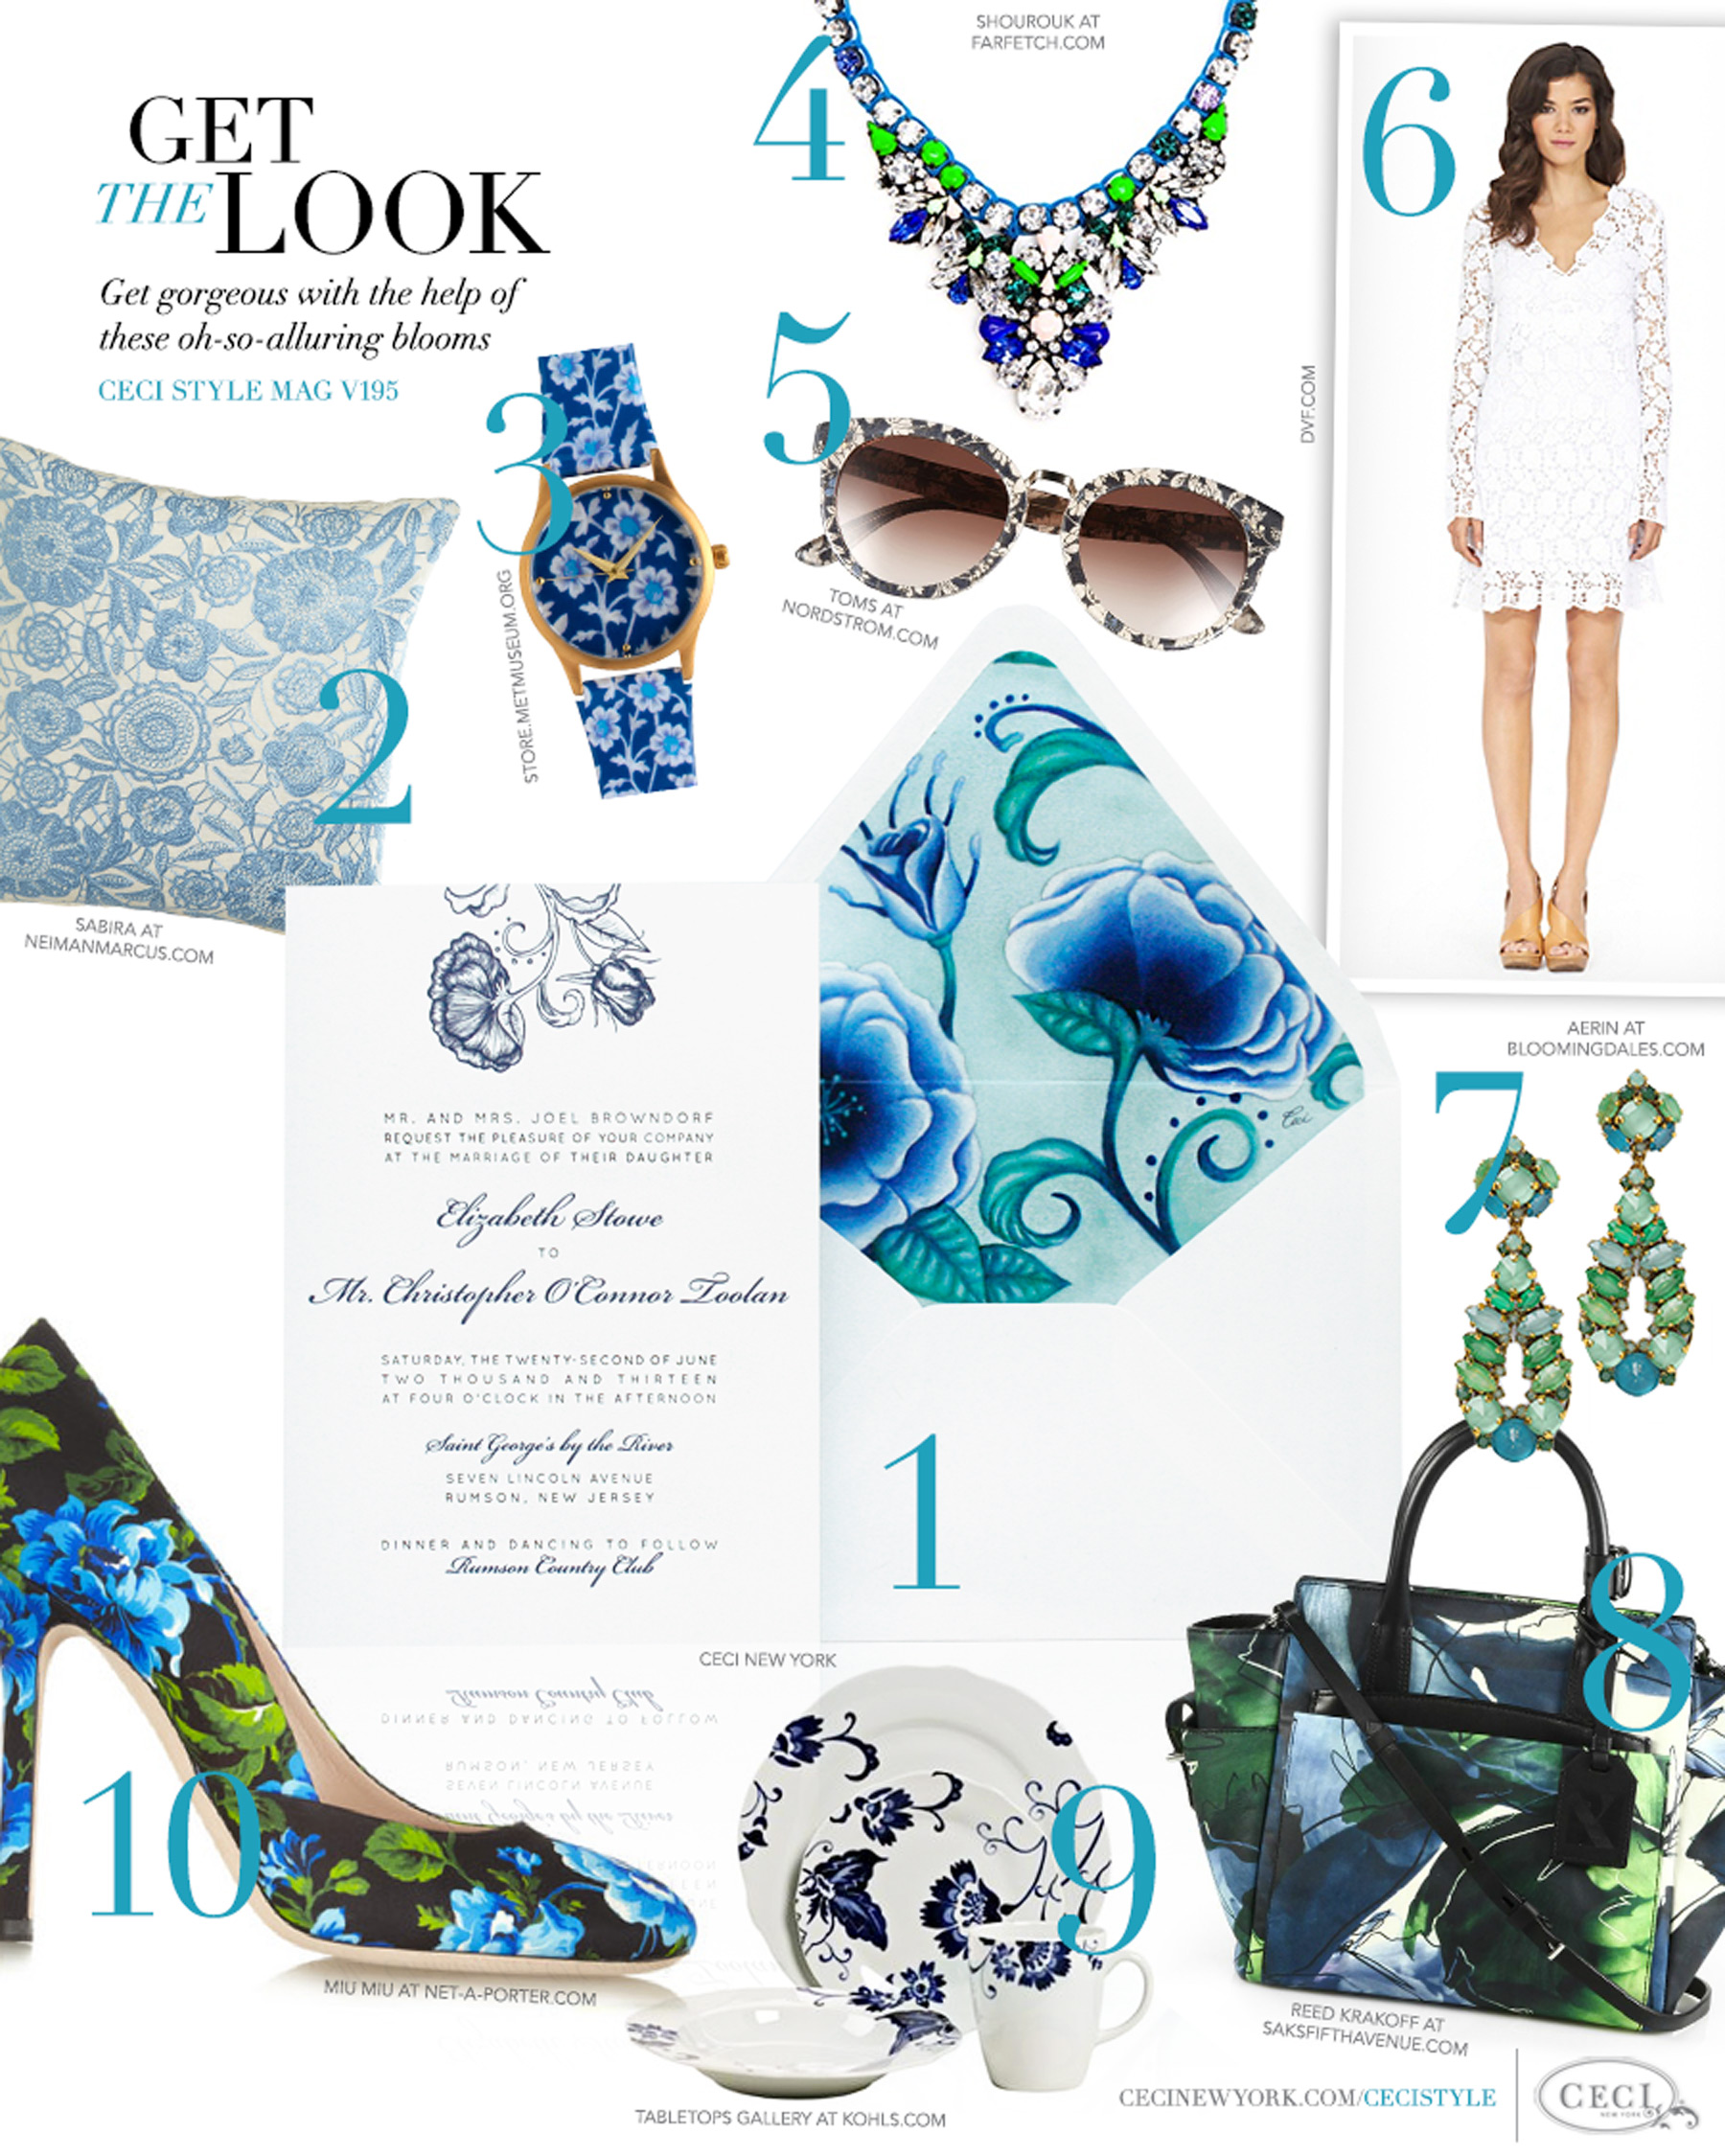 CeciStyle Magazine v195: Get The Look - Garden Glamour - Get gorgeous with the help of these oh-so-alluring blues - Luxury Wedding Invitations by Ceci New York - neimanmarcus.com, home goods, store.metmuseum.org, jewelry, toms, shourouk, jewelry, dvf.com, fashion, aerin, reed krakoff, handbags, kohls.com, miu miu, shoes